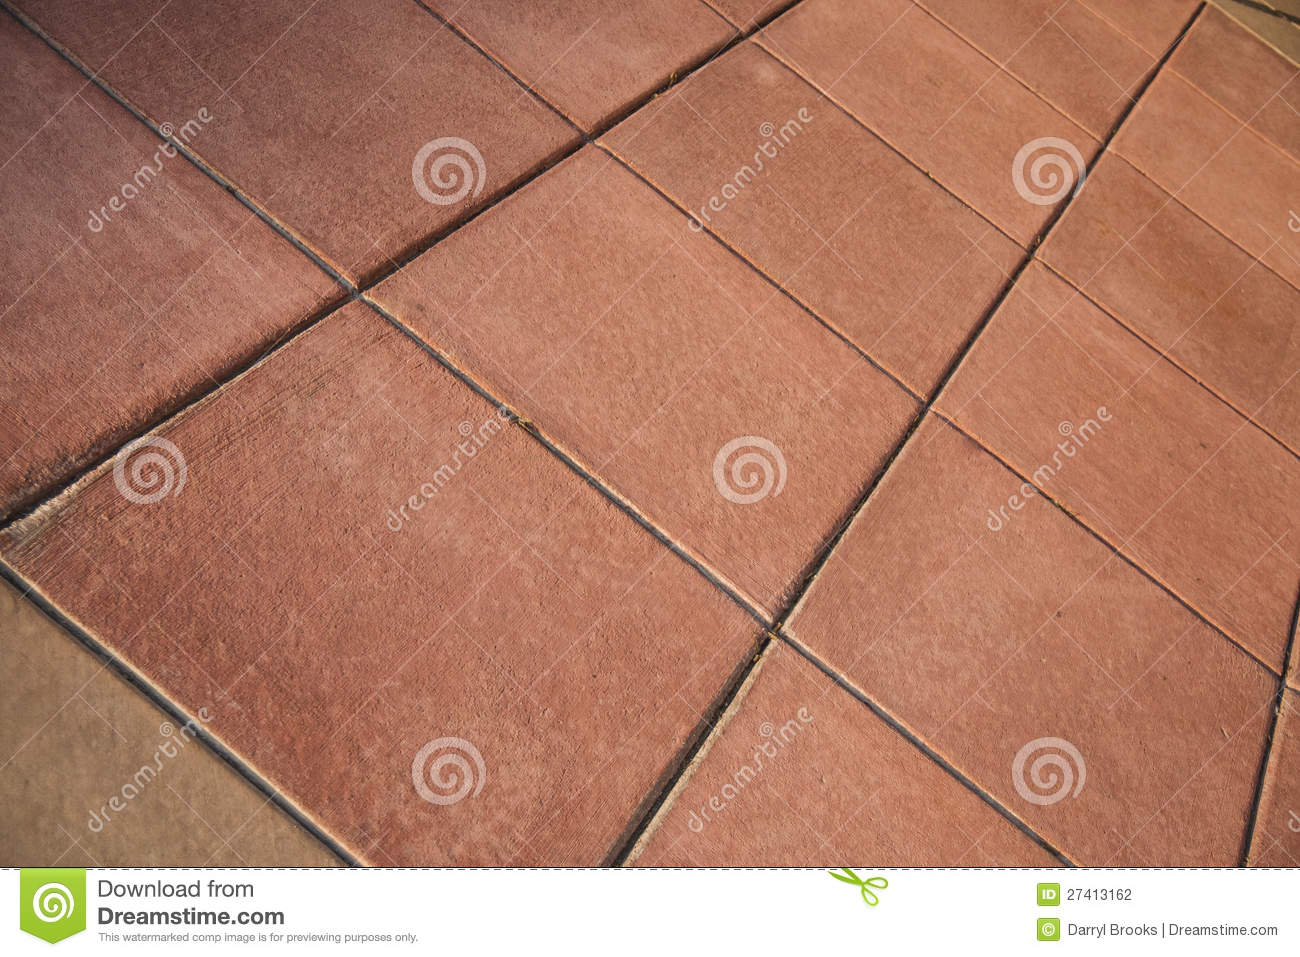 Red Clay Ceramic Tile Floor On An Angle